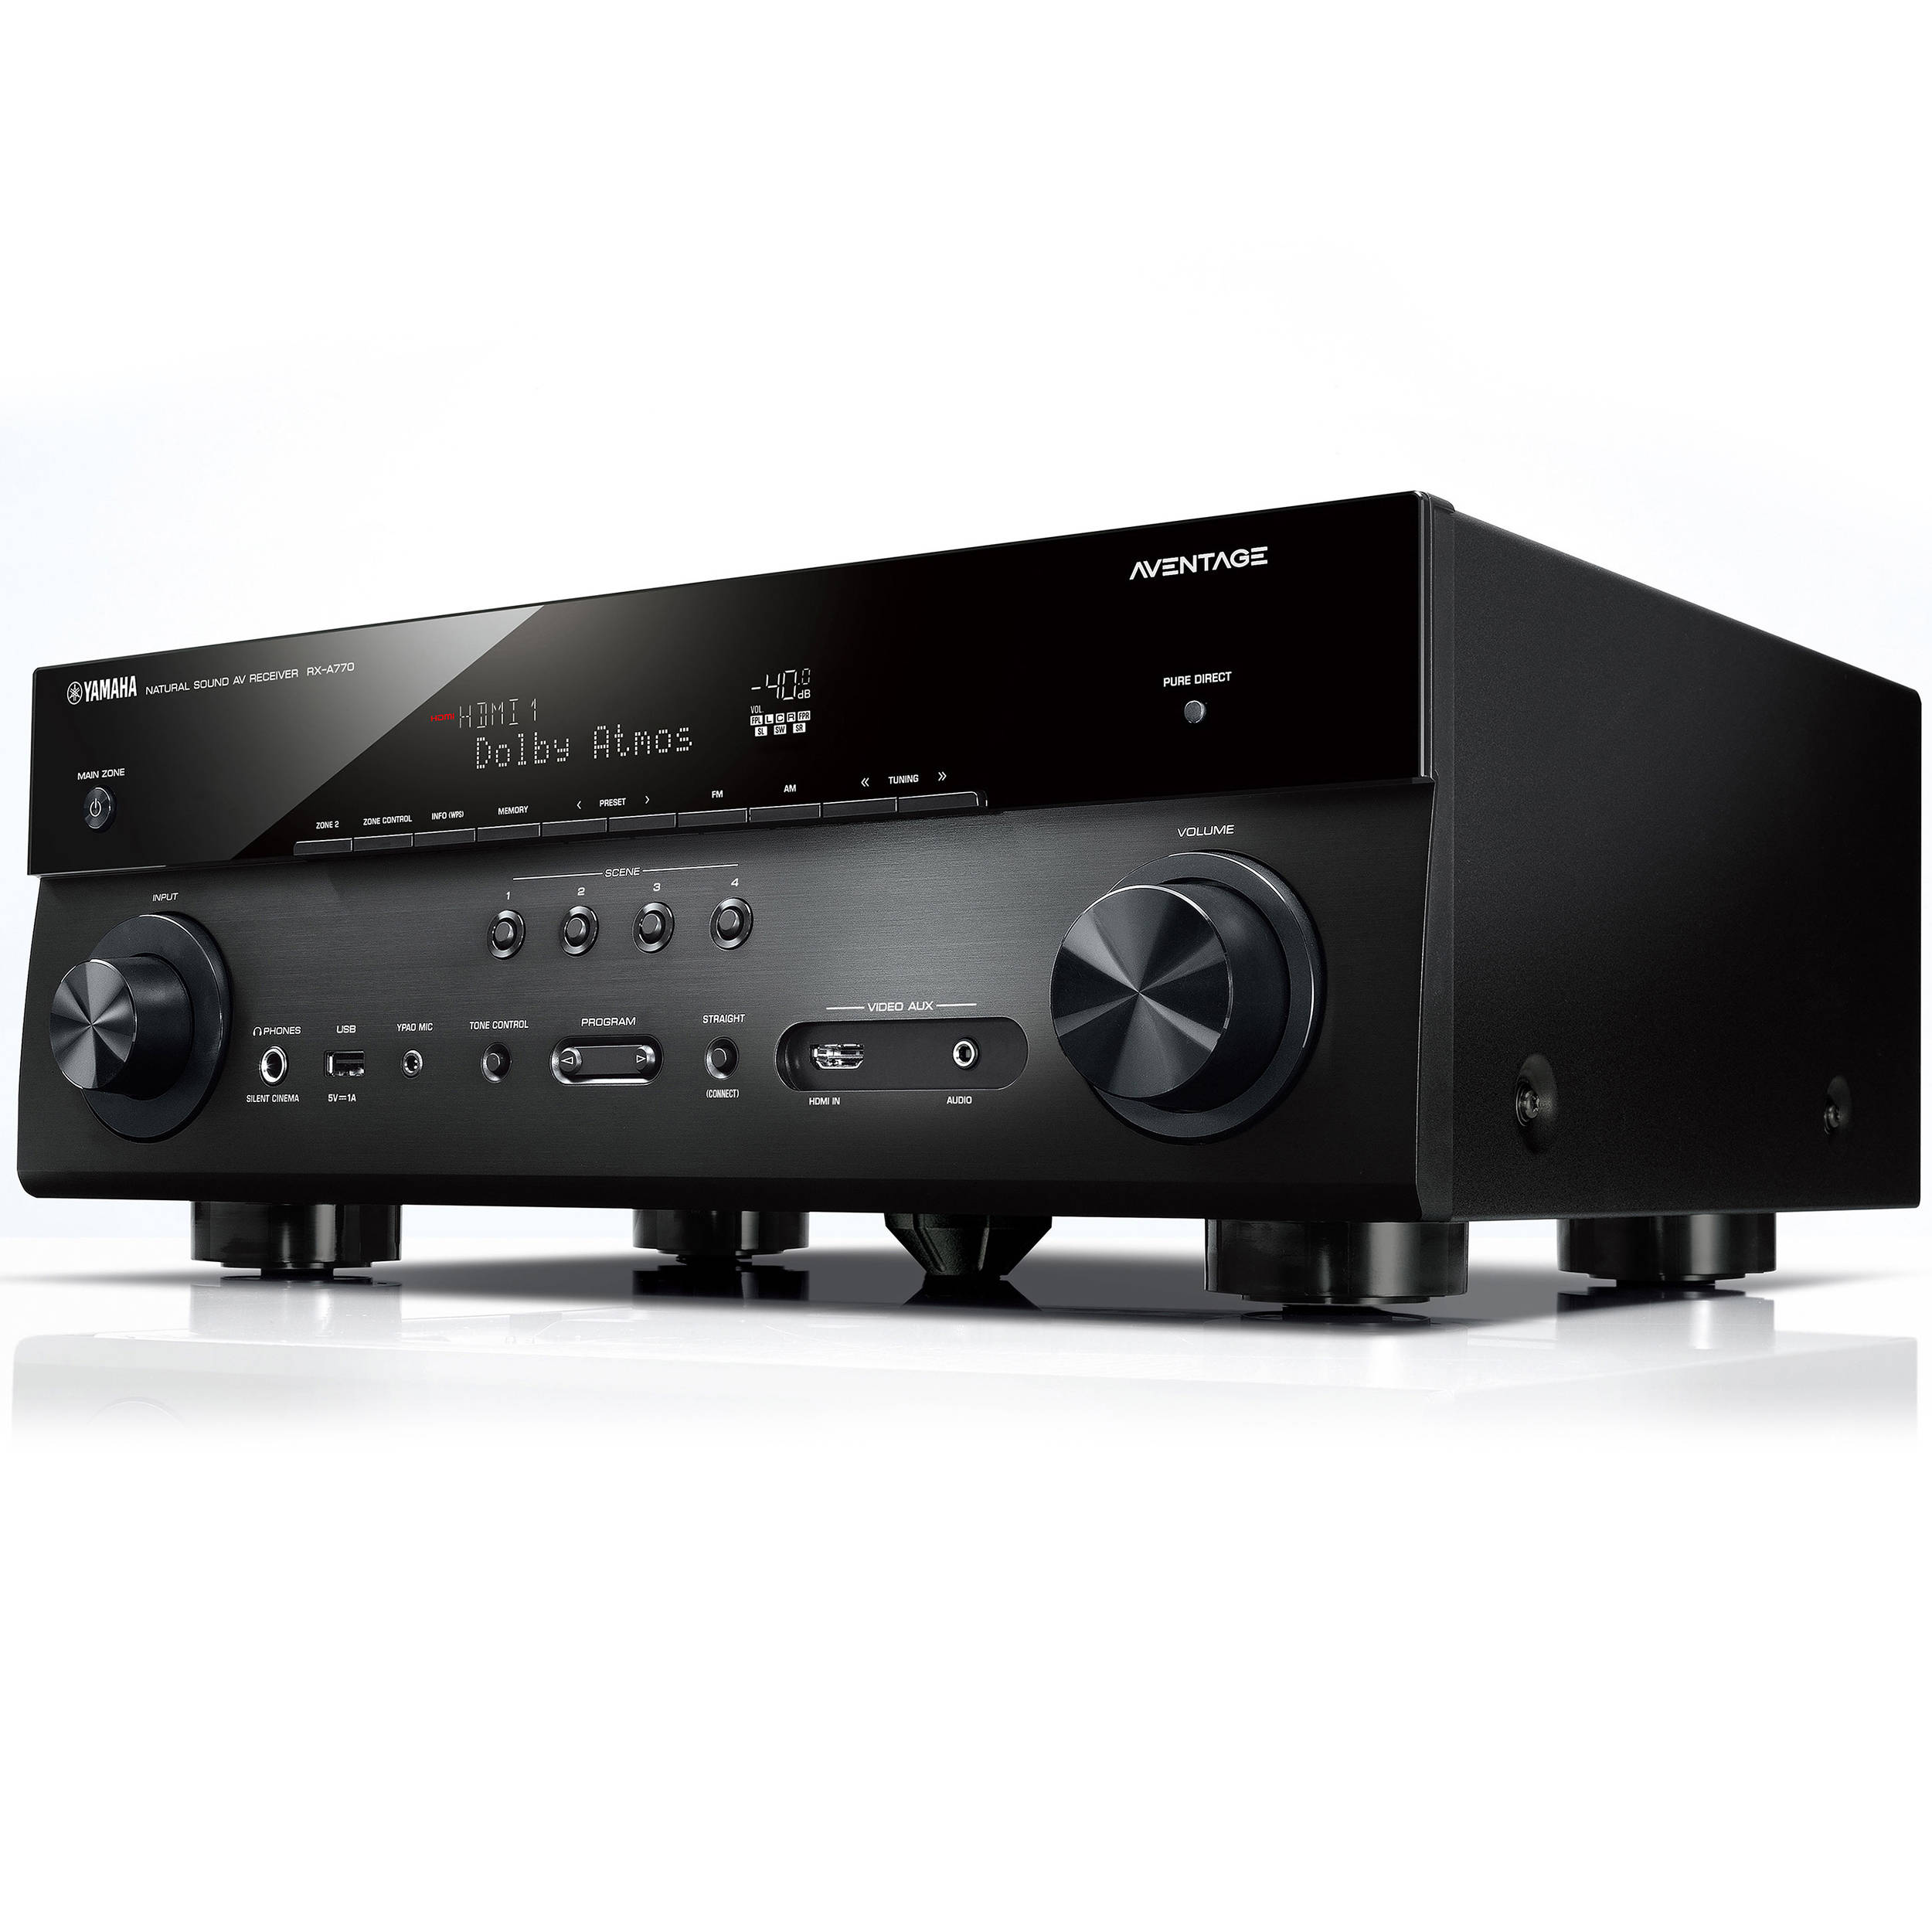 Yamaha AVENTAGE RX-A770 7 2-Channel Network A/V Receiver